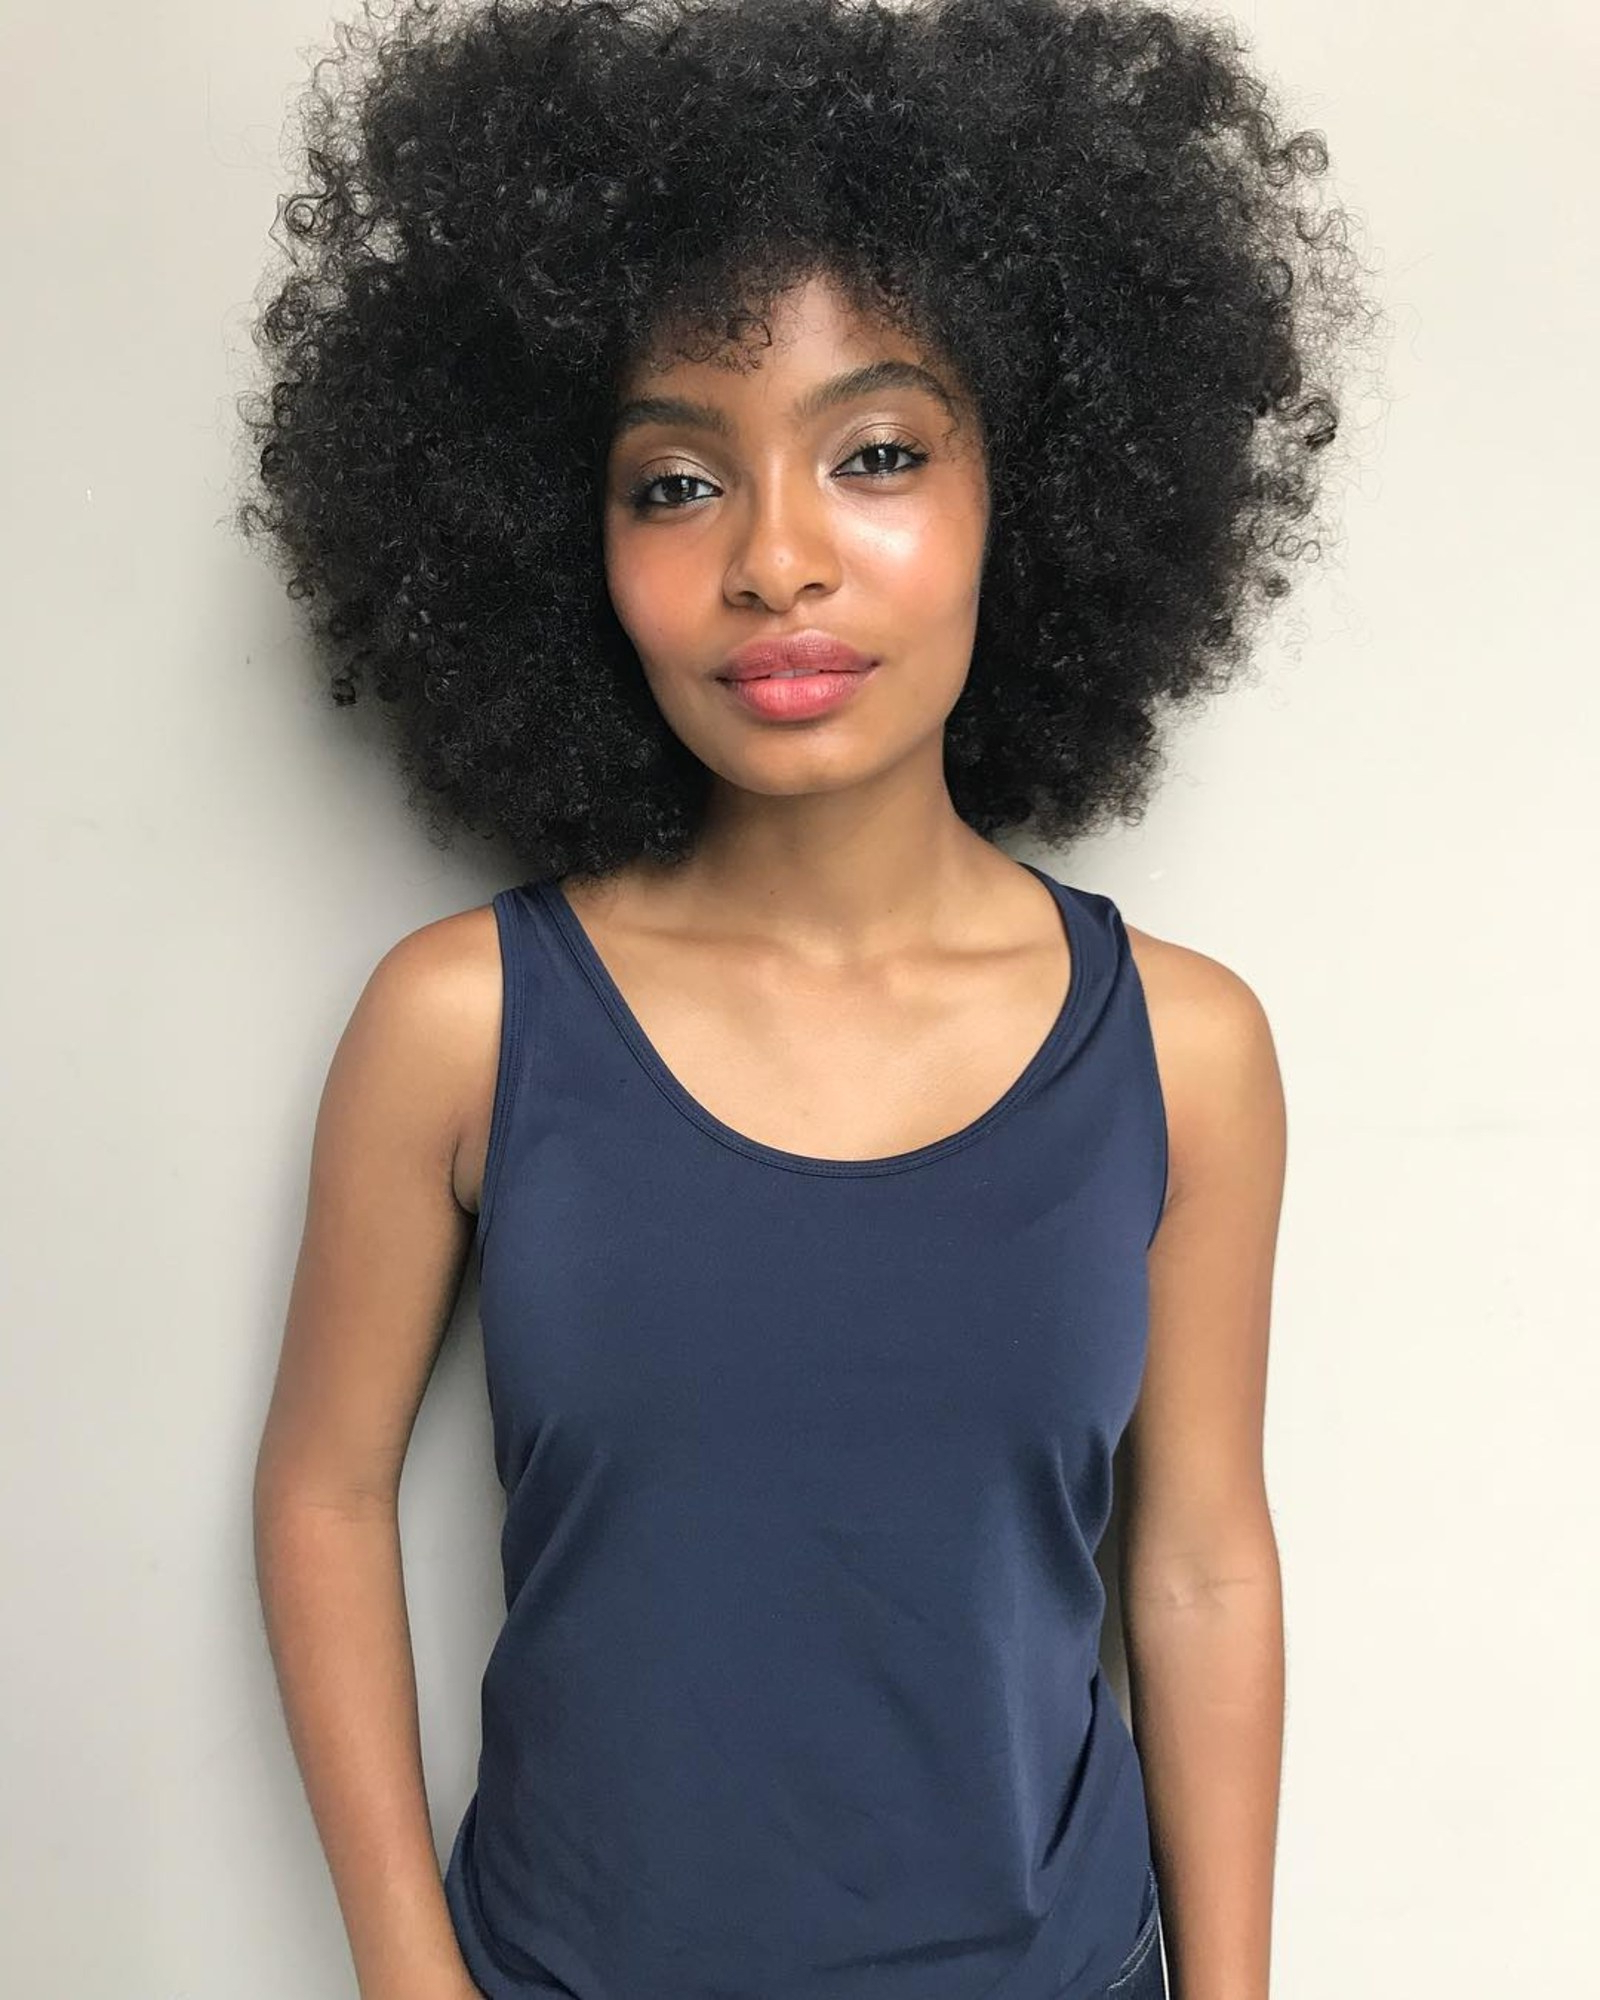 Photo Gallery of Short Black Hairstyles With Tousled Curls ...